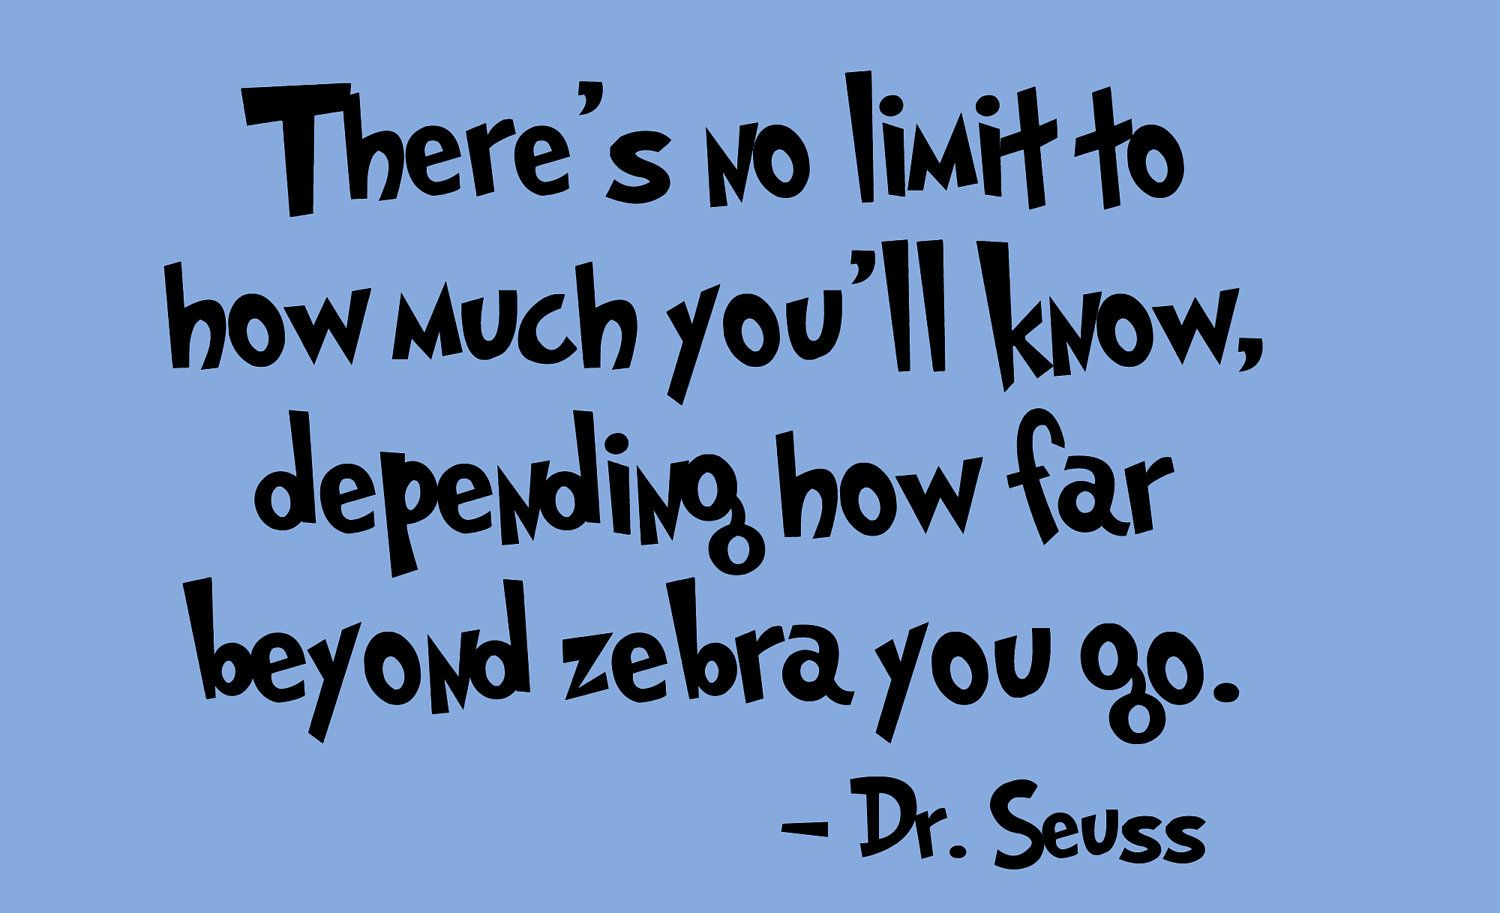 Dr Seuss Quotes About Friendship Google Image Result For Httpimg0.etsystatic00005662447